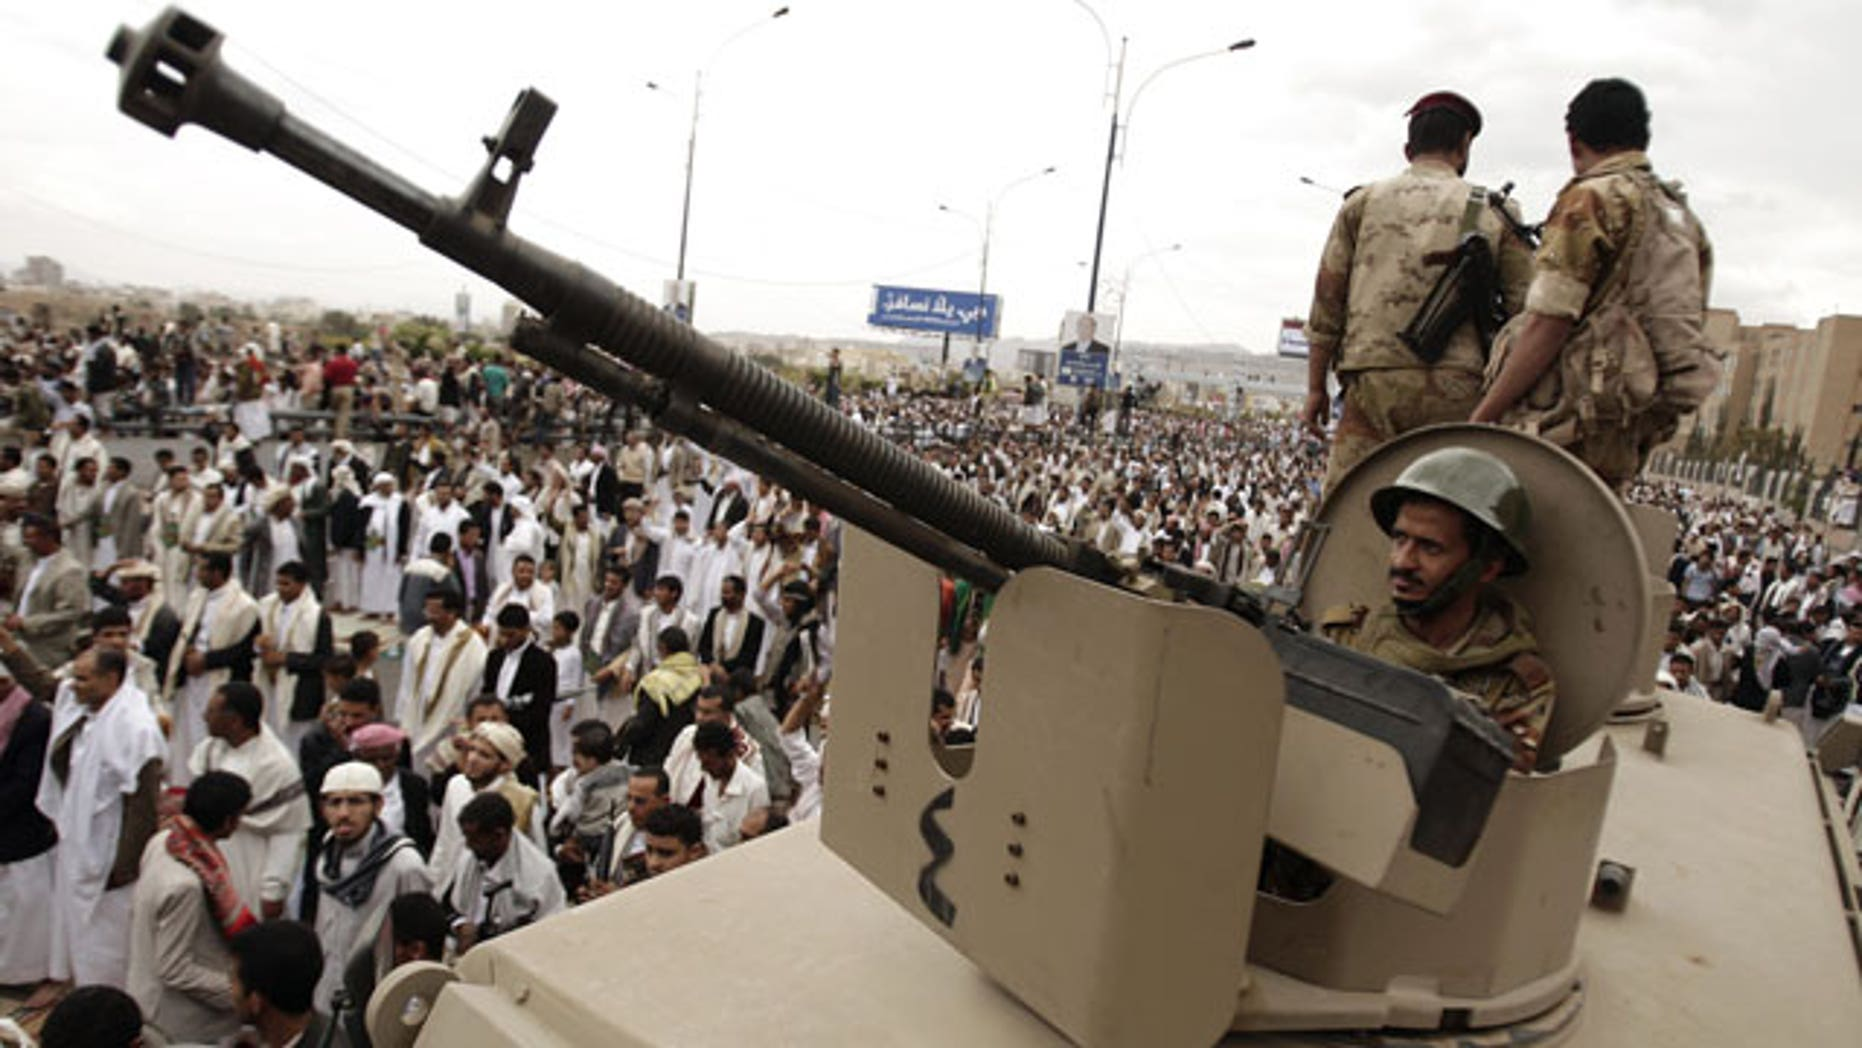 Mar. 30, 2012: A defected army soldier supporting protestors looks on from behind a weapon mounted on a patrol truck to secure a street where protestors demand the trial of Yemen's former President Ali Abdullah Saleh, in Sanaa, Yemen.